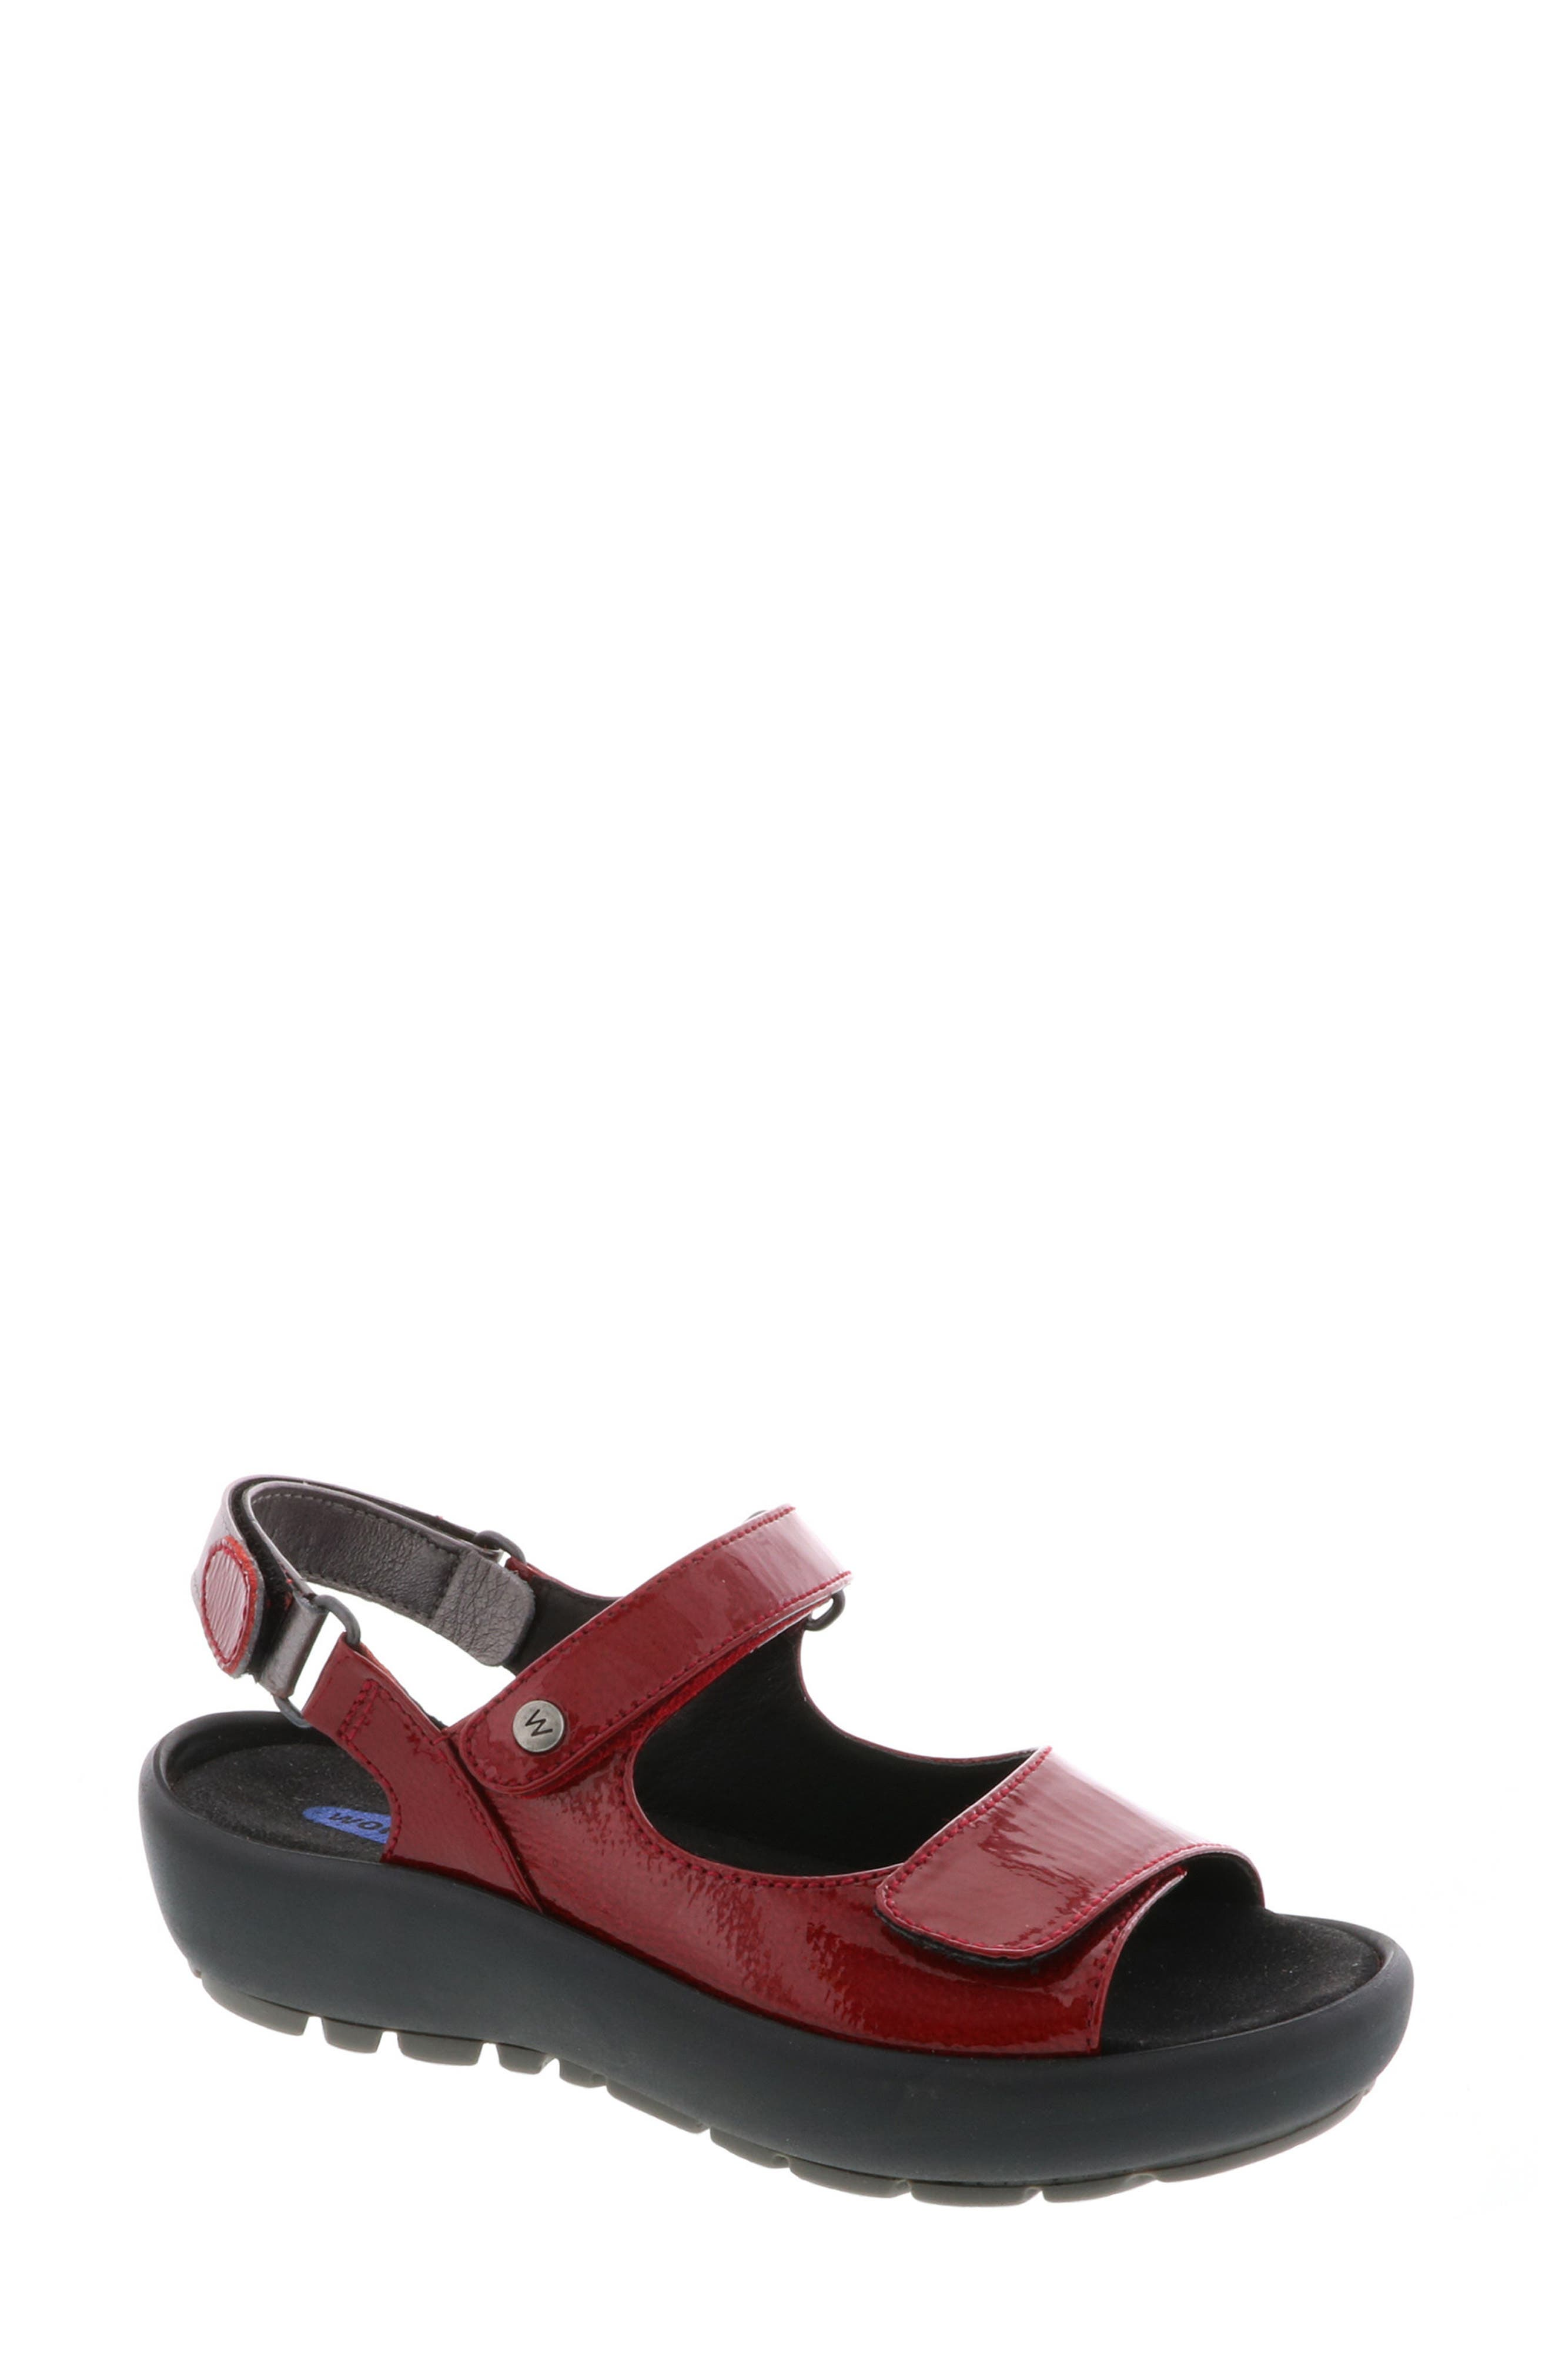 Rio Sandal,                         Main,                         color, Red Patent Leather